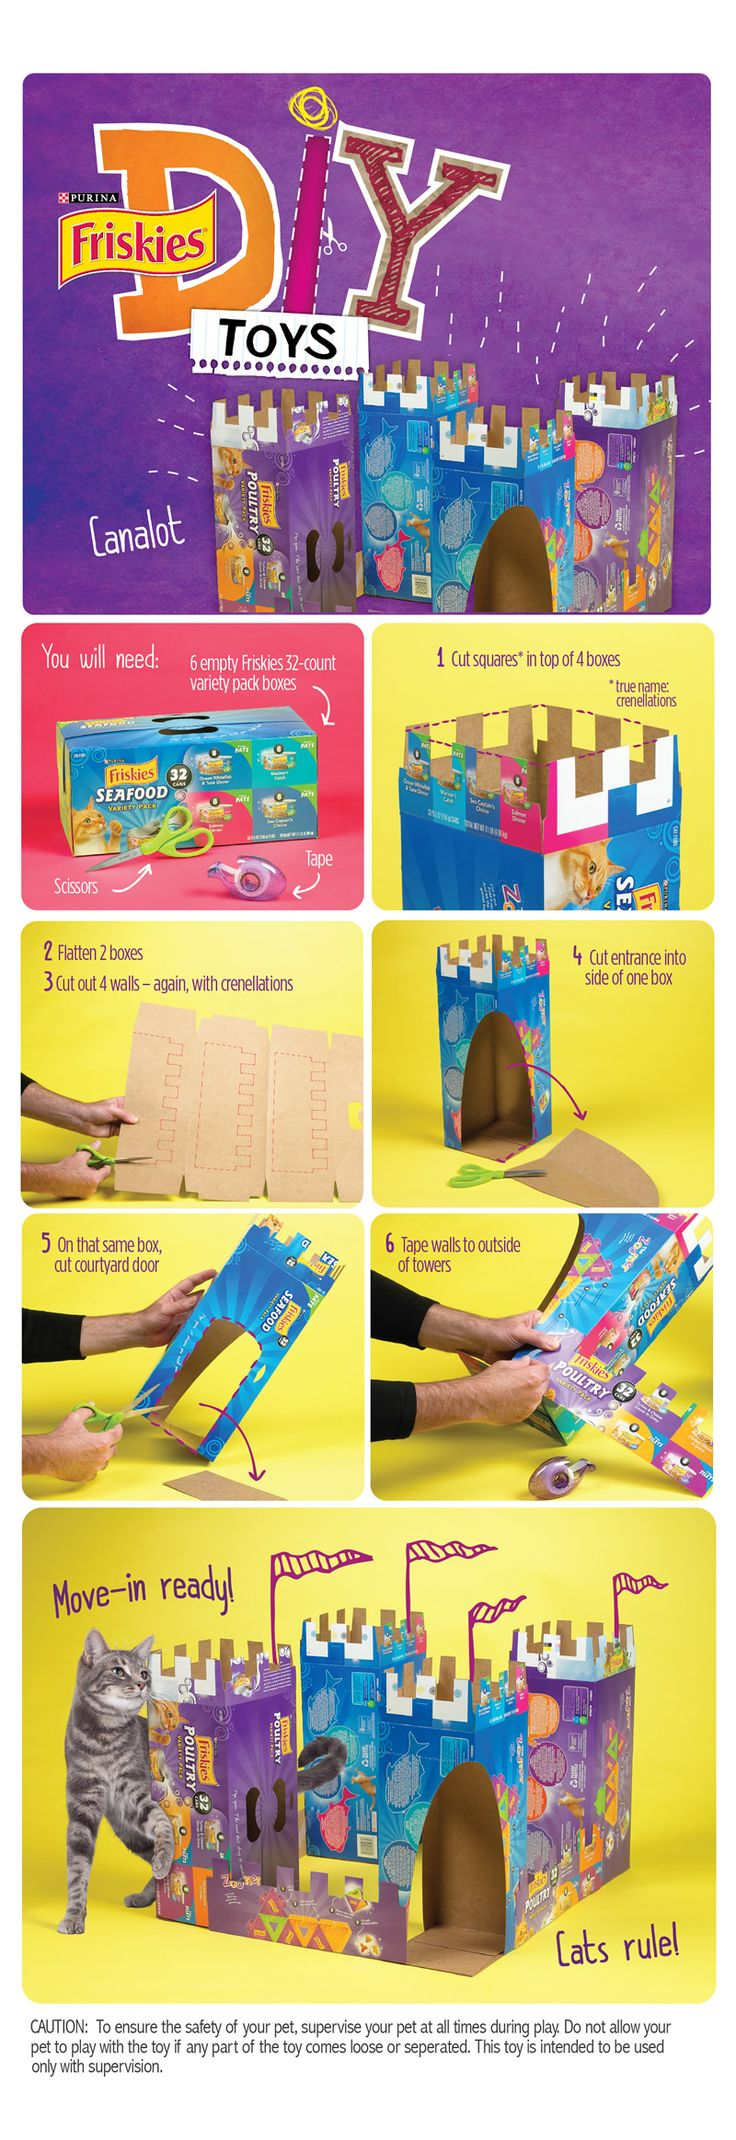 """Friskies® DIY Homemade Cat Toy: """"Canalot""""  A magical castle for your kitty cat made from free materials"""